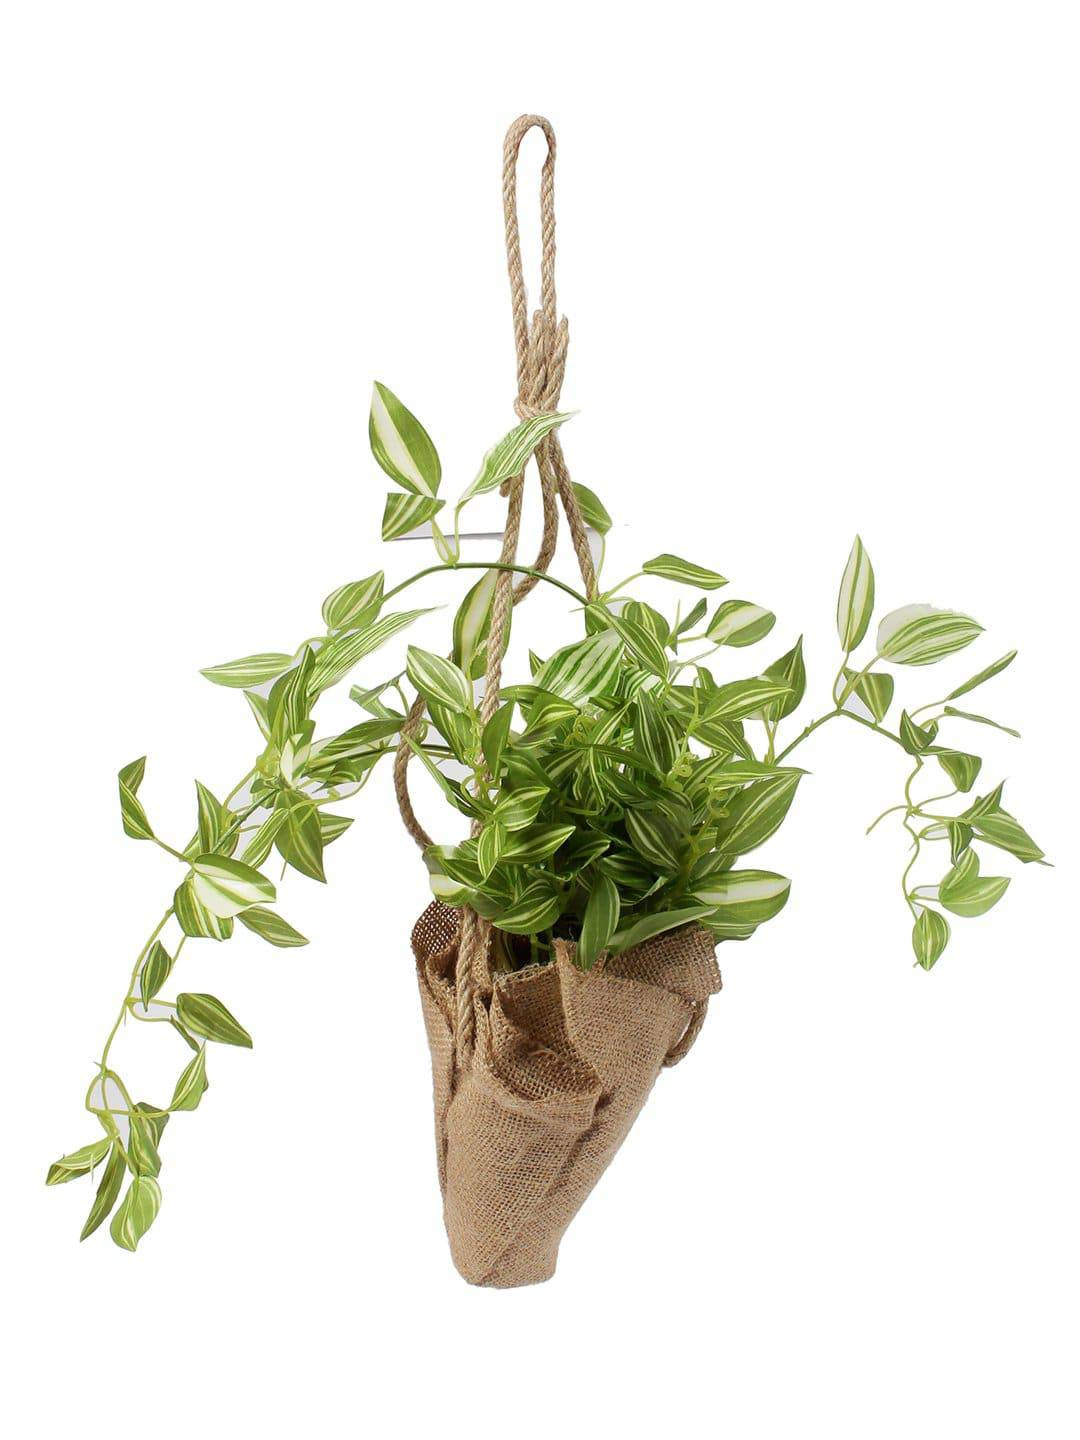 Pollination Artificial Creeper Brown Bonsai with Jute Bag for Balcony Garden Decoration - Artificial Flowers & Plants - PolliNation